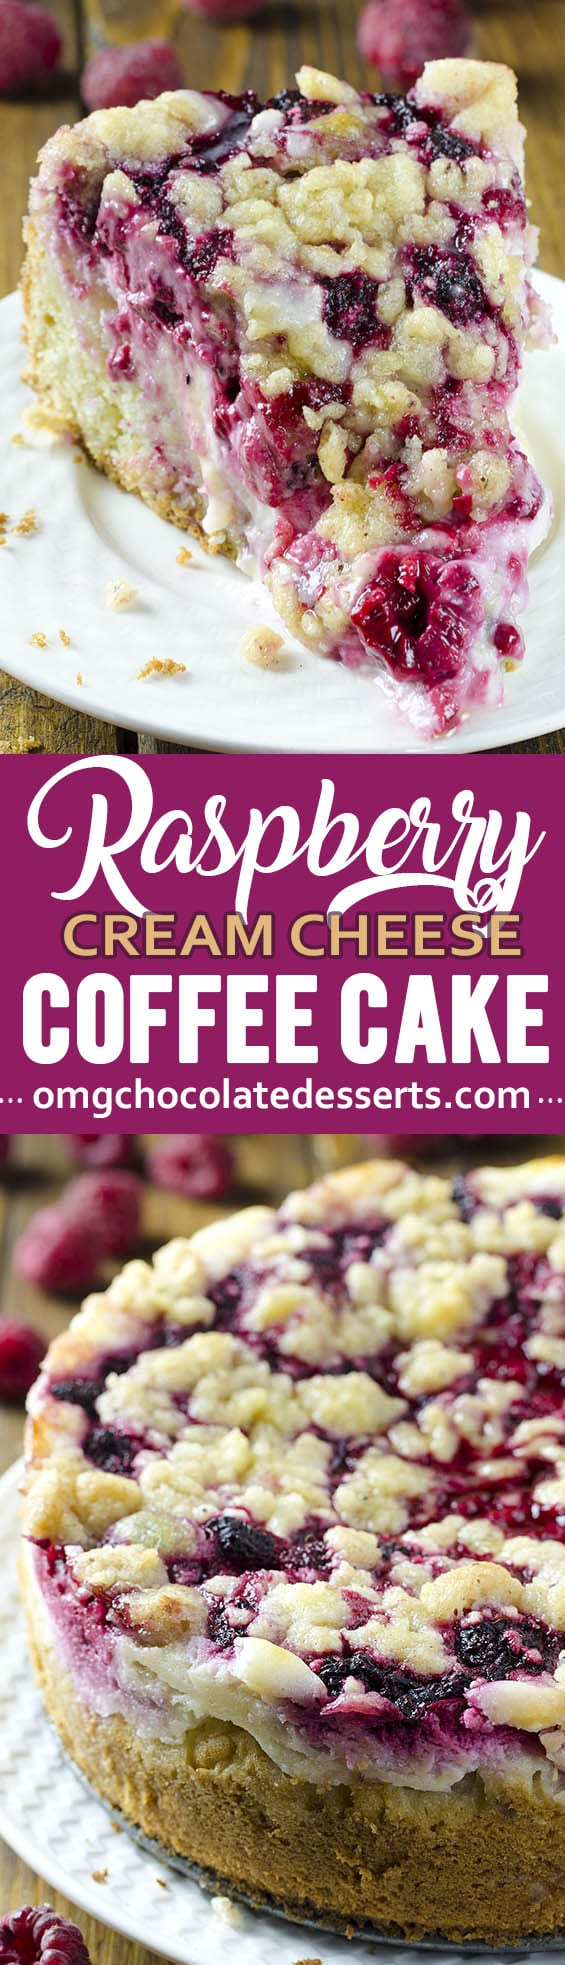 This Raspberry Cream Cheese Coffee Cake is the only coffee cake recipe you'll ever need. It is a delicious way to sneak a little fruit into everyone's favorite brunch. SO easy to make!